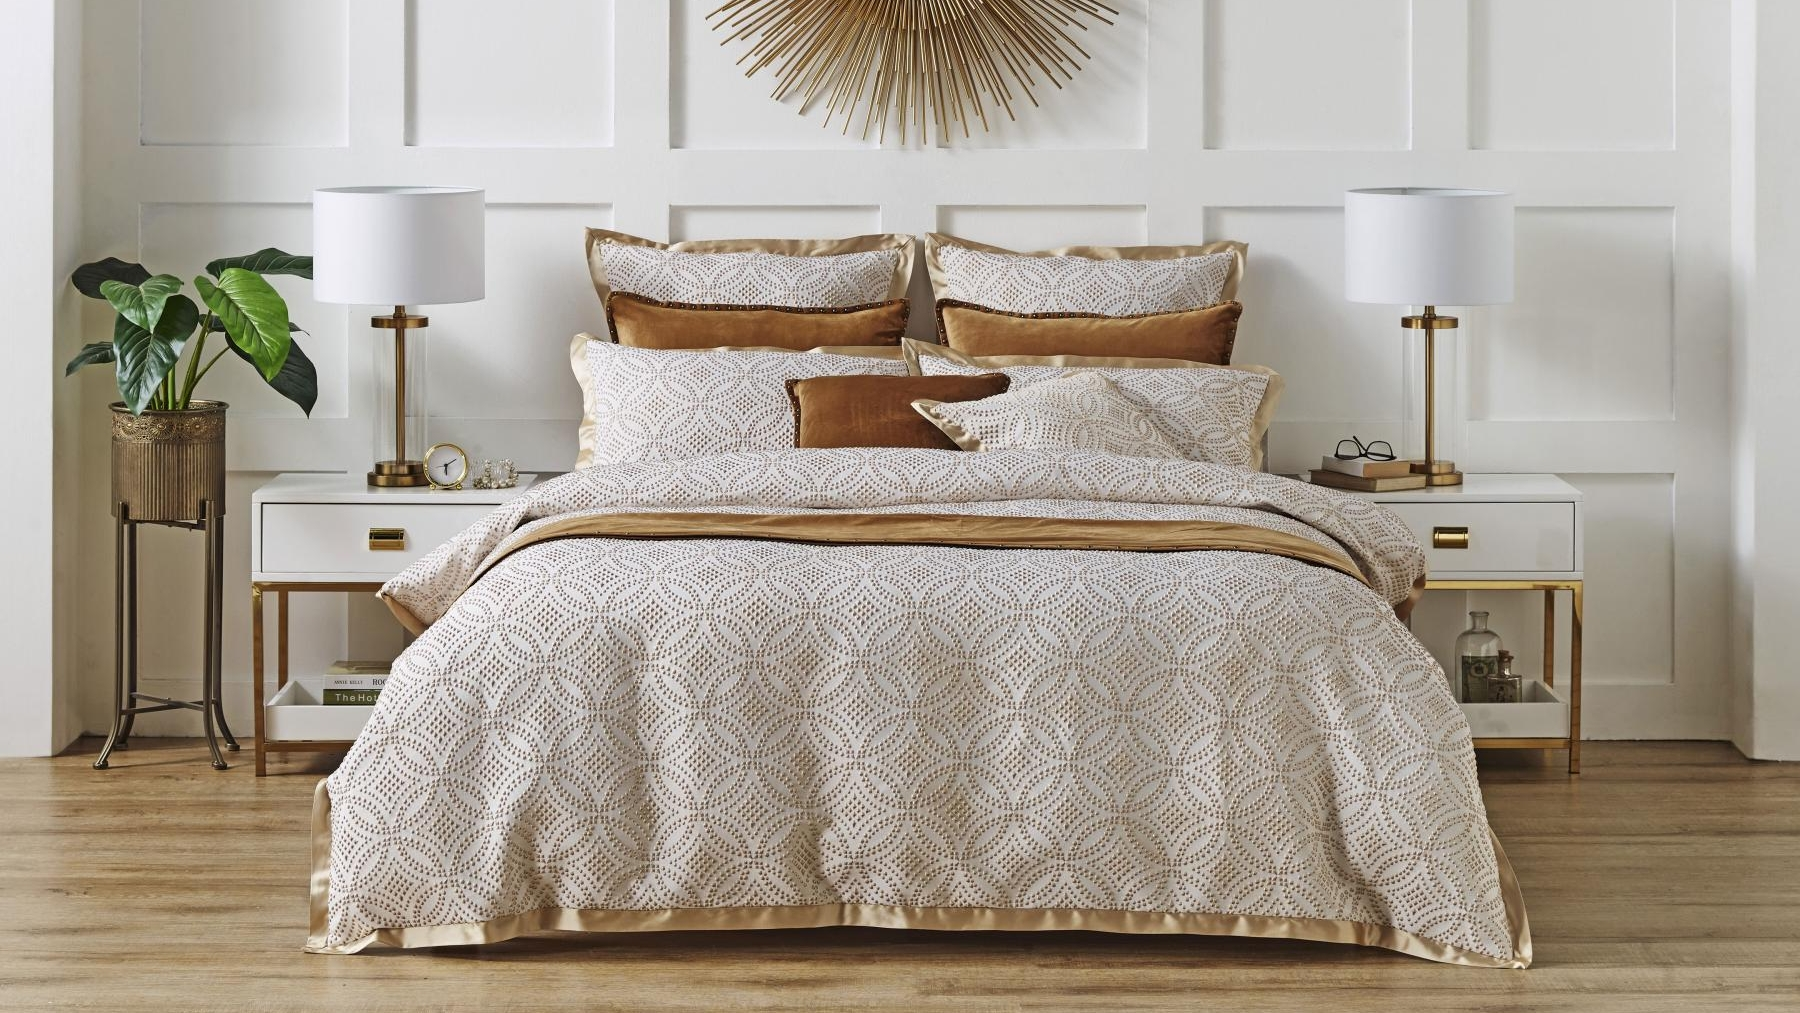 How to purchase sets of new bed sheets online